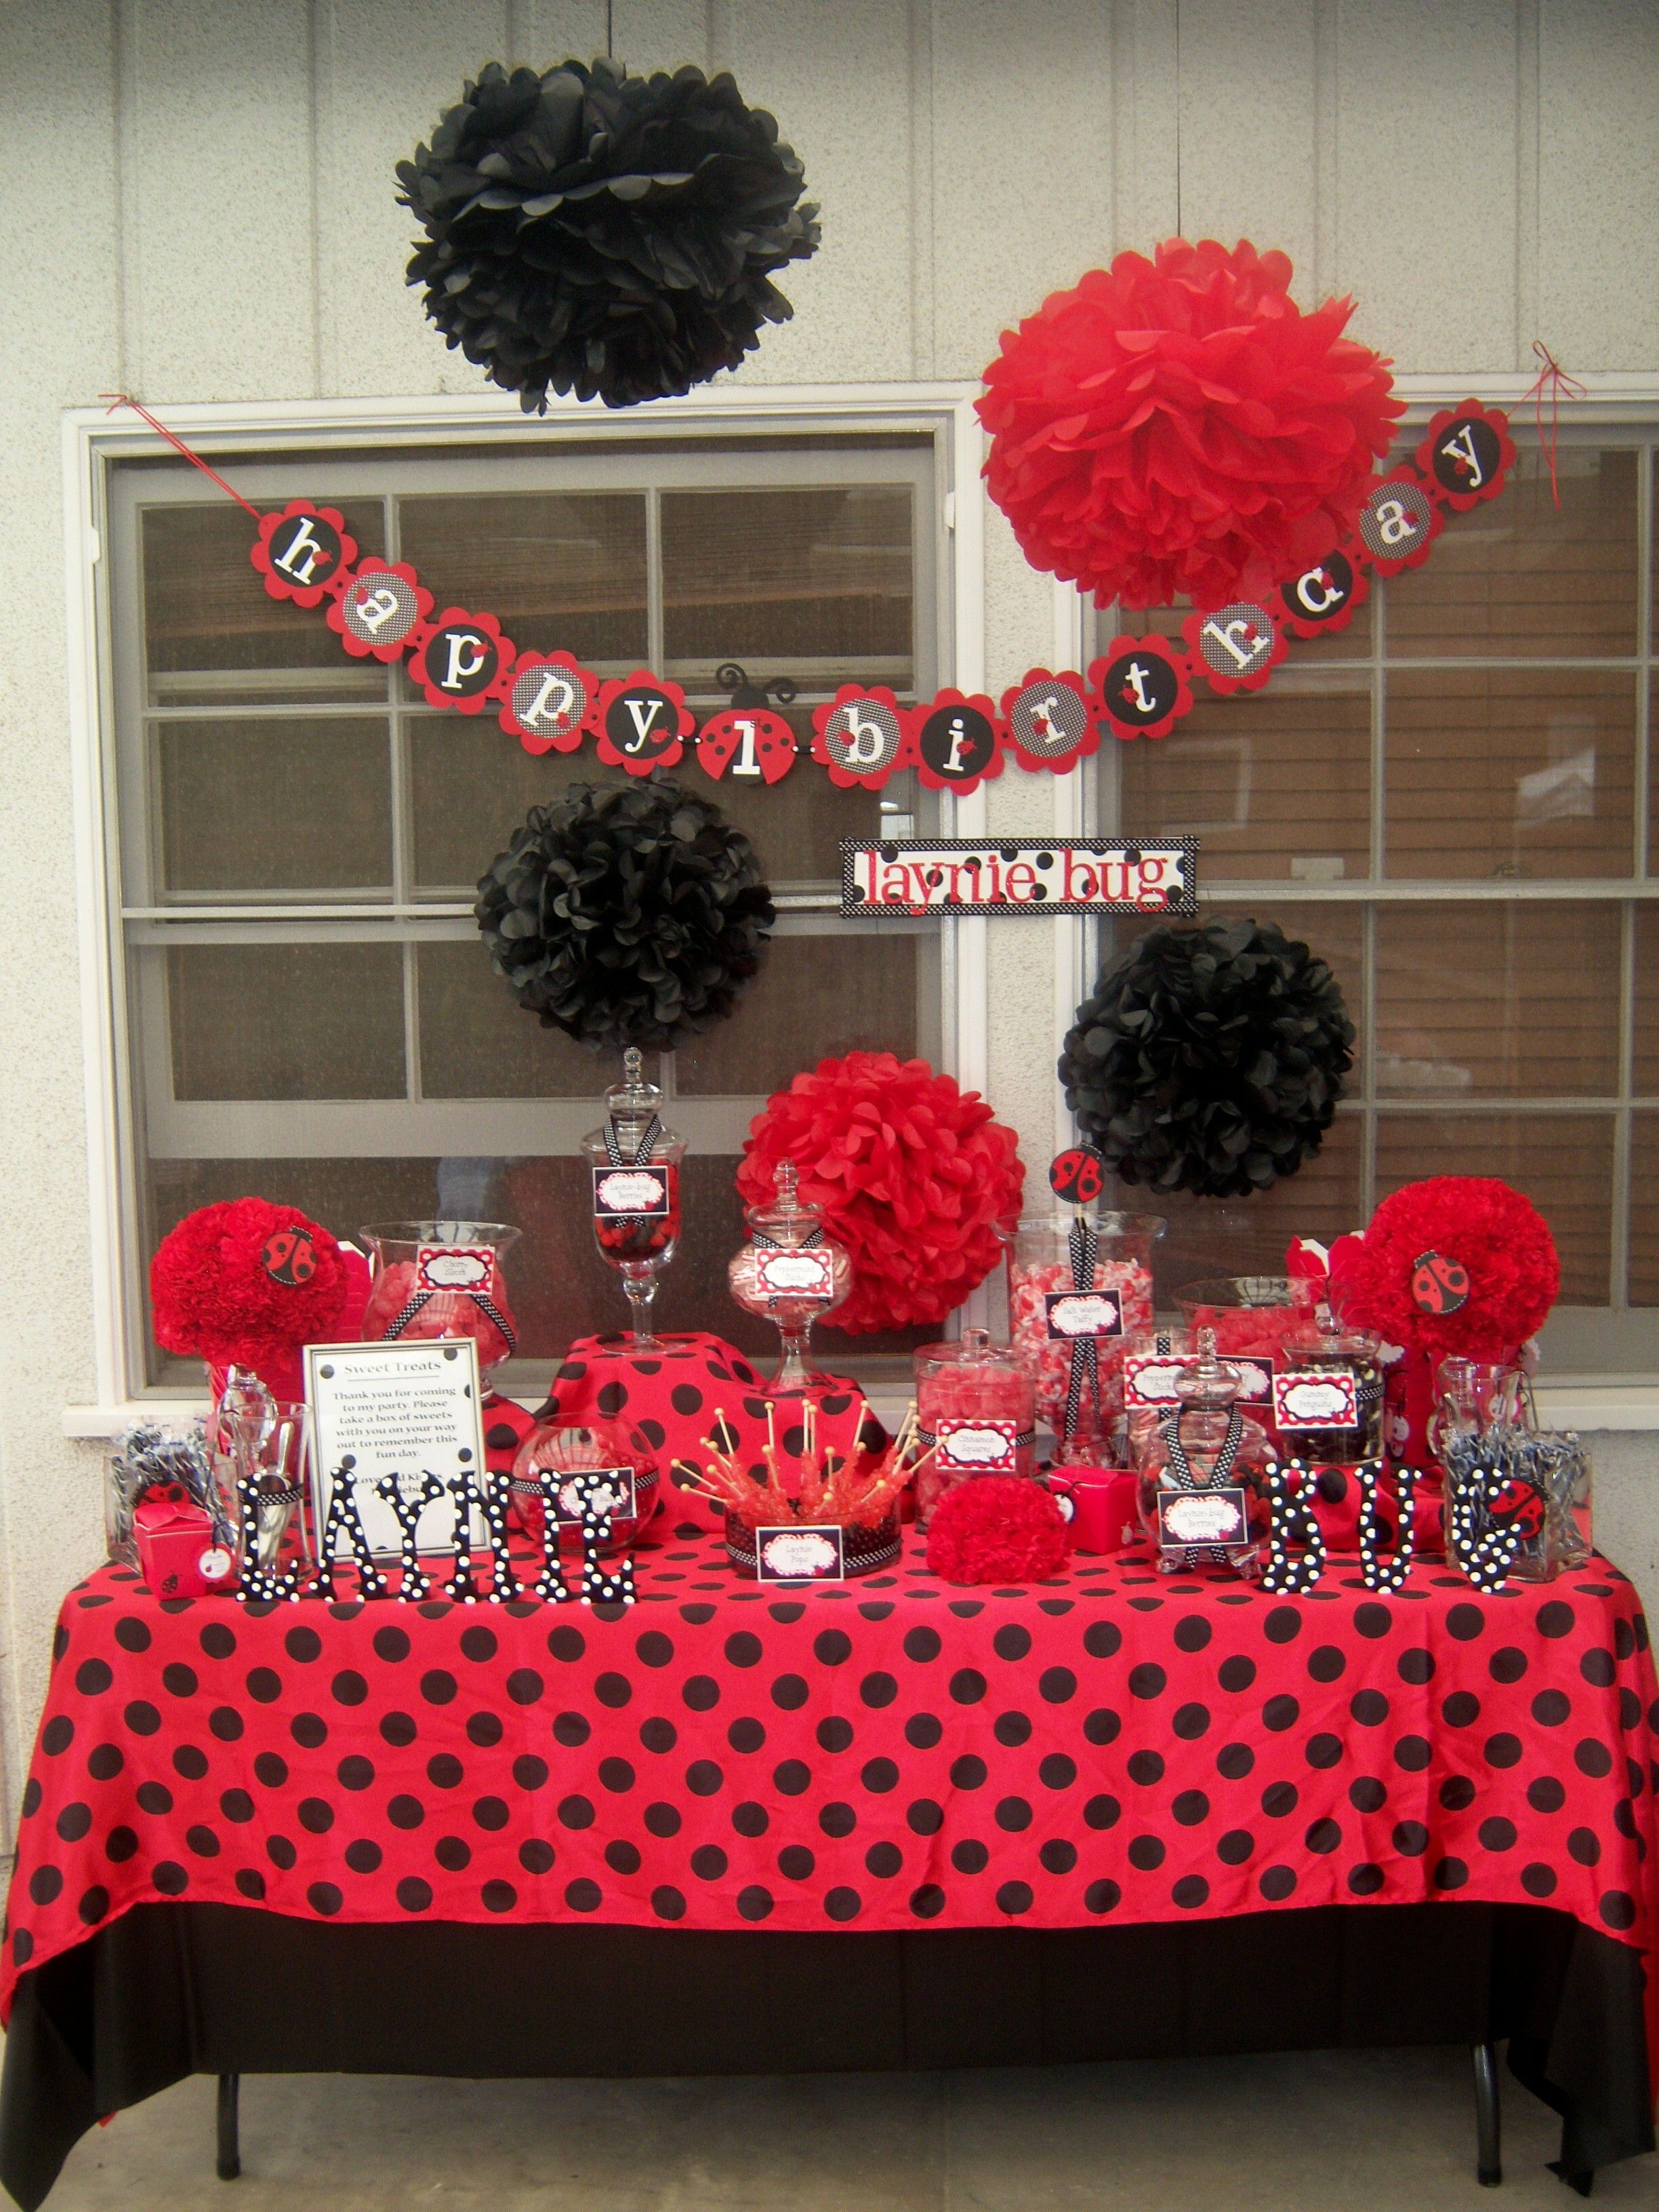 ladybug decor | lady bug theme|lewisville | plano| frisco| flower